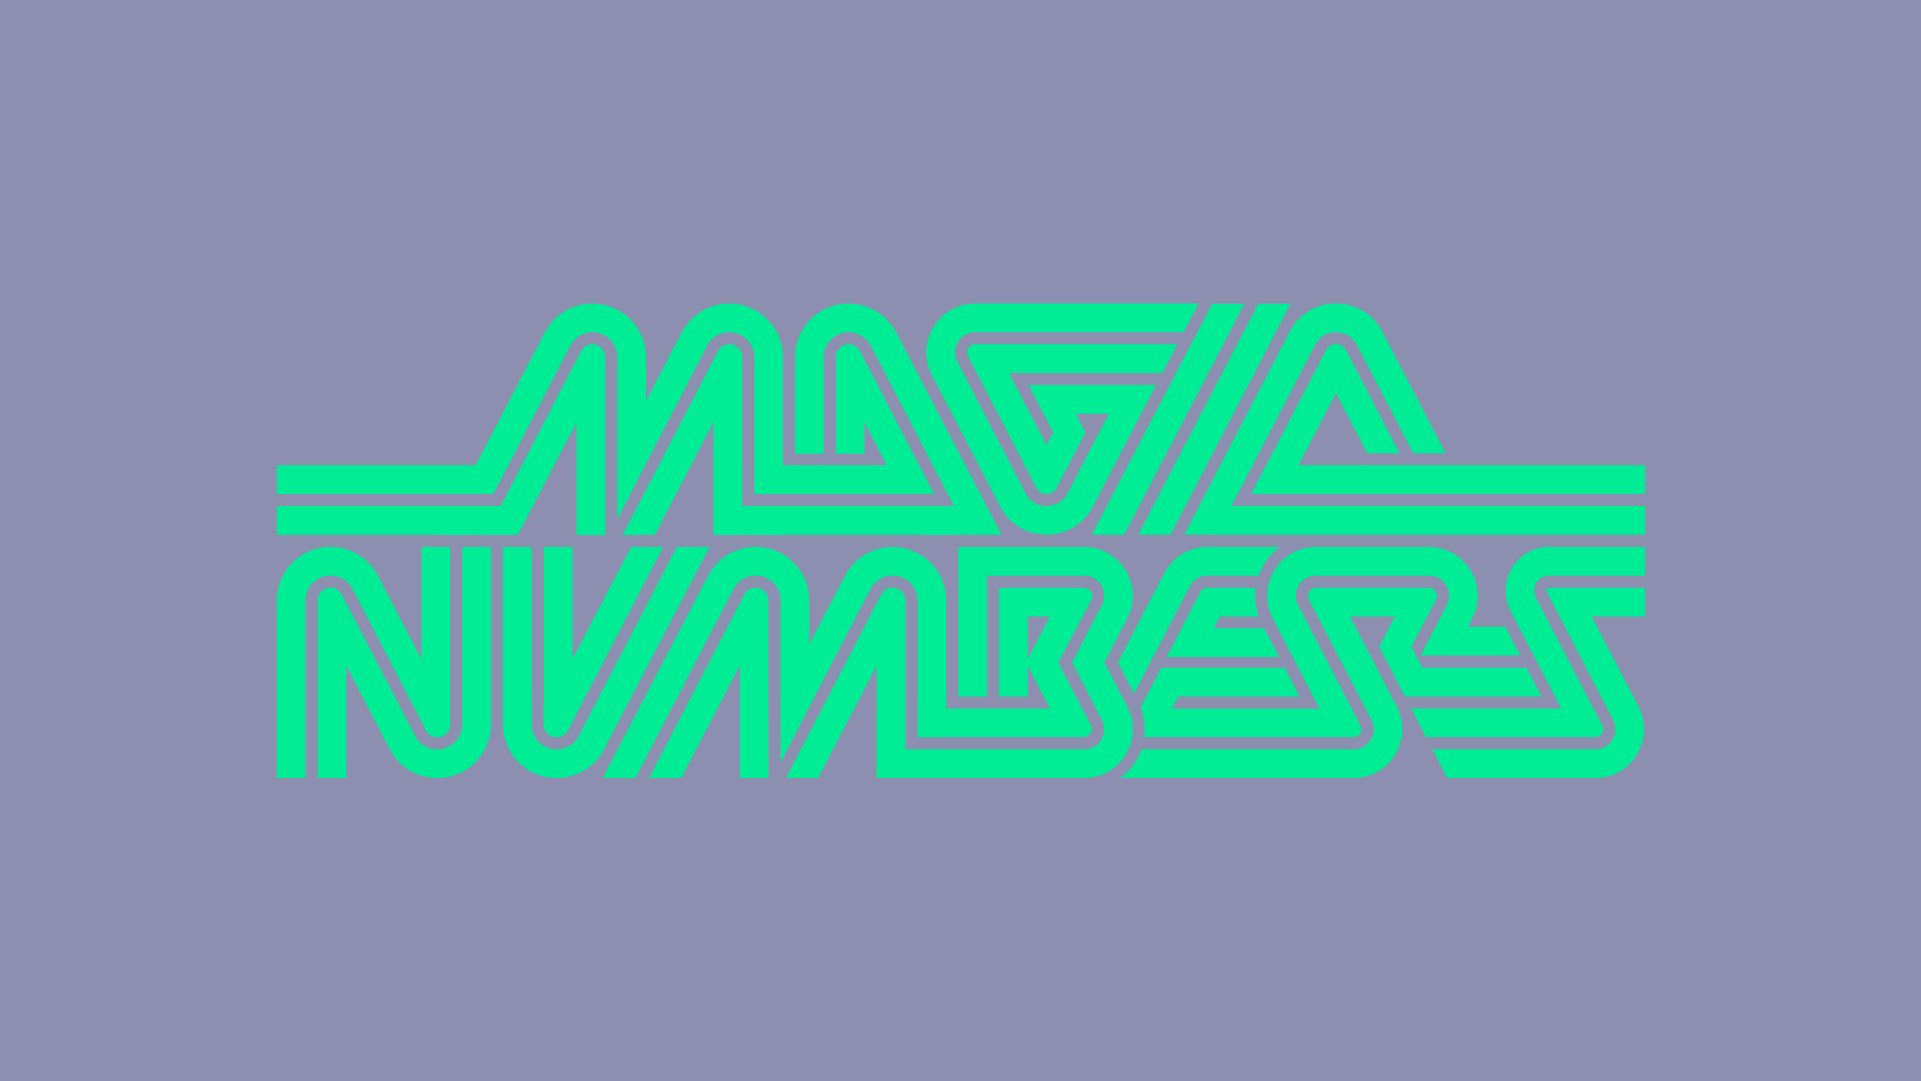 MagicNumbers_LogoType_Justin Harder_10.png